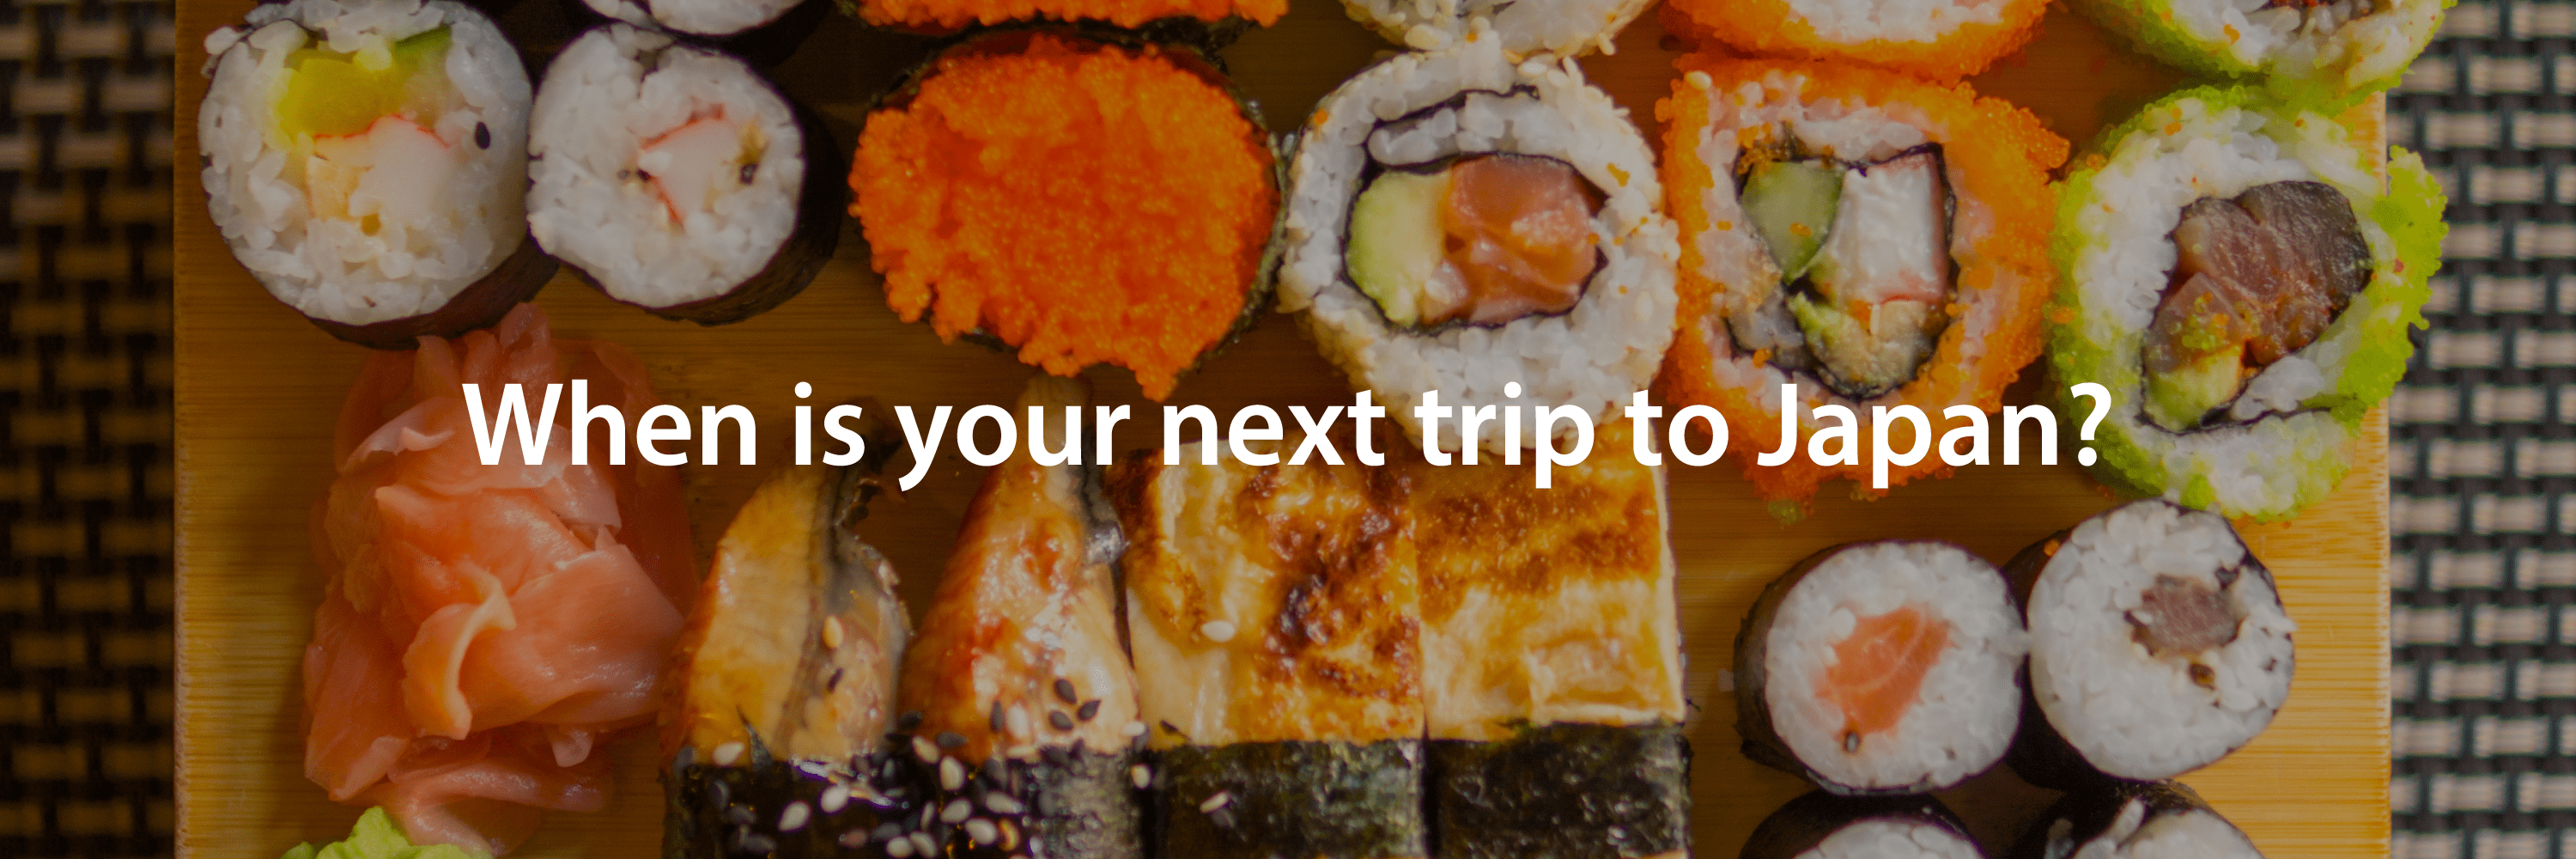 >When is your next trip to Japan? Sushi